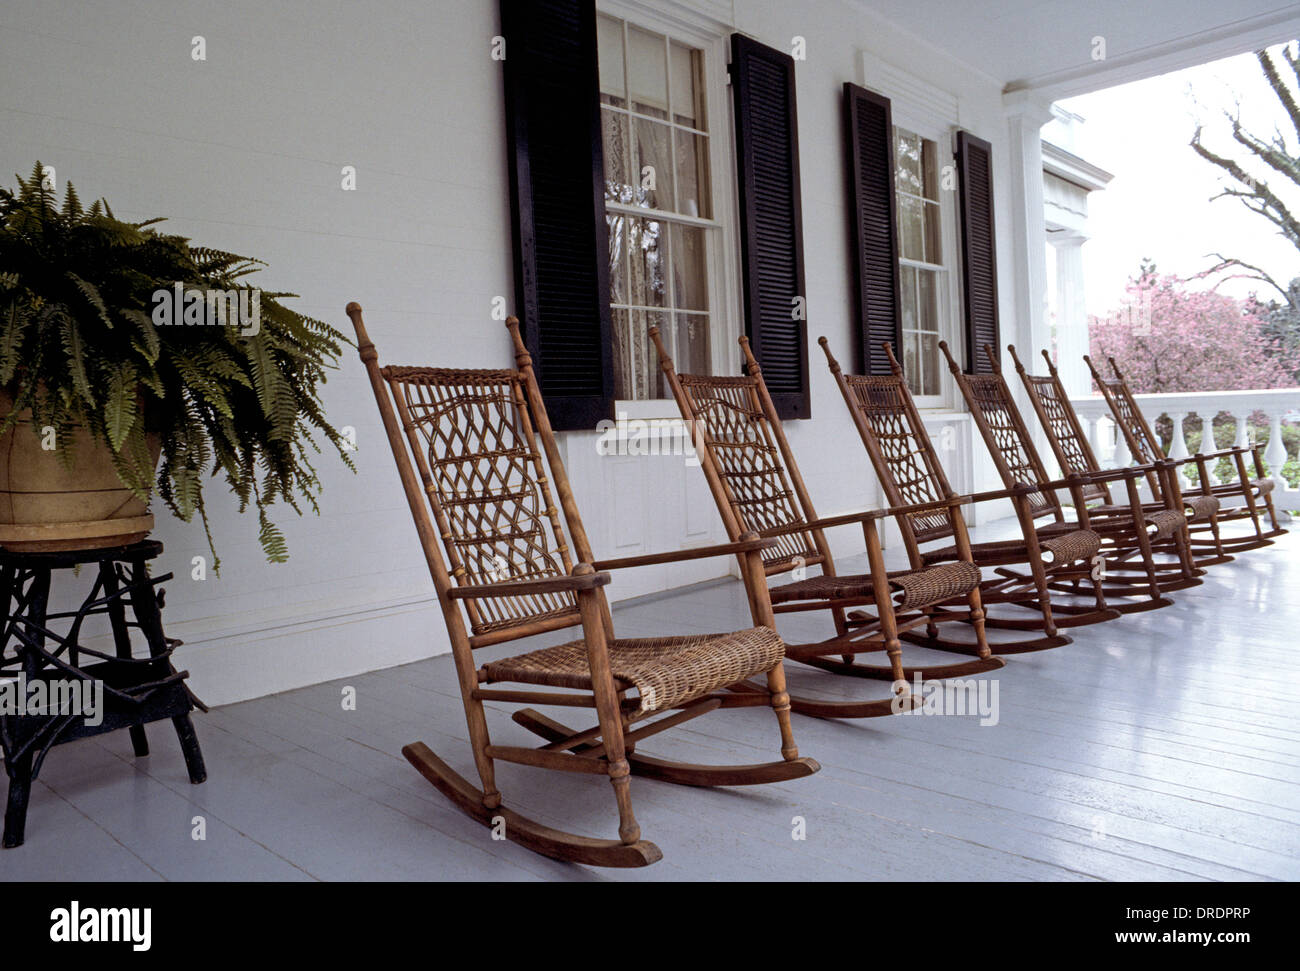 Charmant Rocking Chairs Made Of Wood And Wicker Await Visitors On The Front Porch Of  The Classic 1830s Rosedown Plantation In St. Francisville, Louisiana, USA.